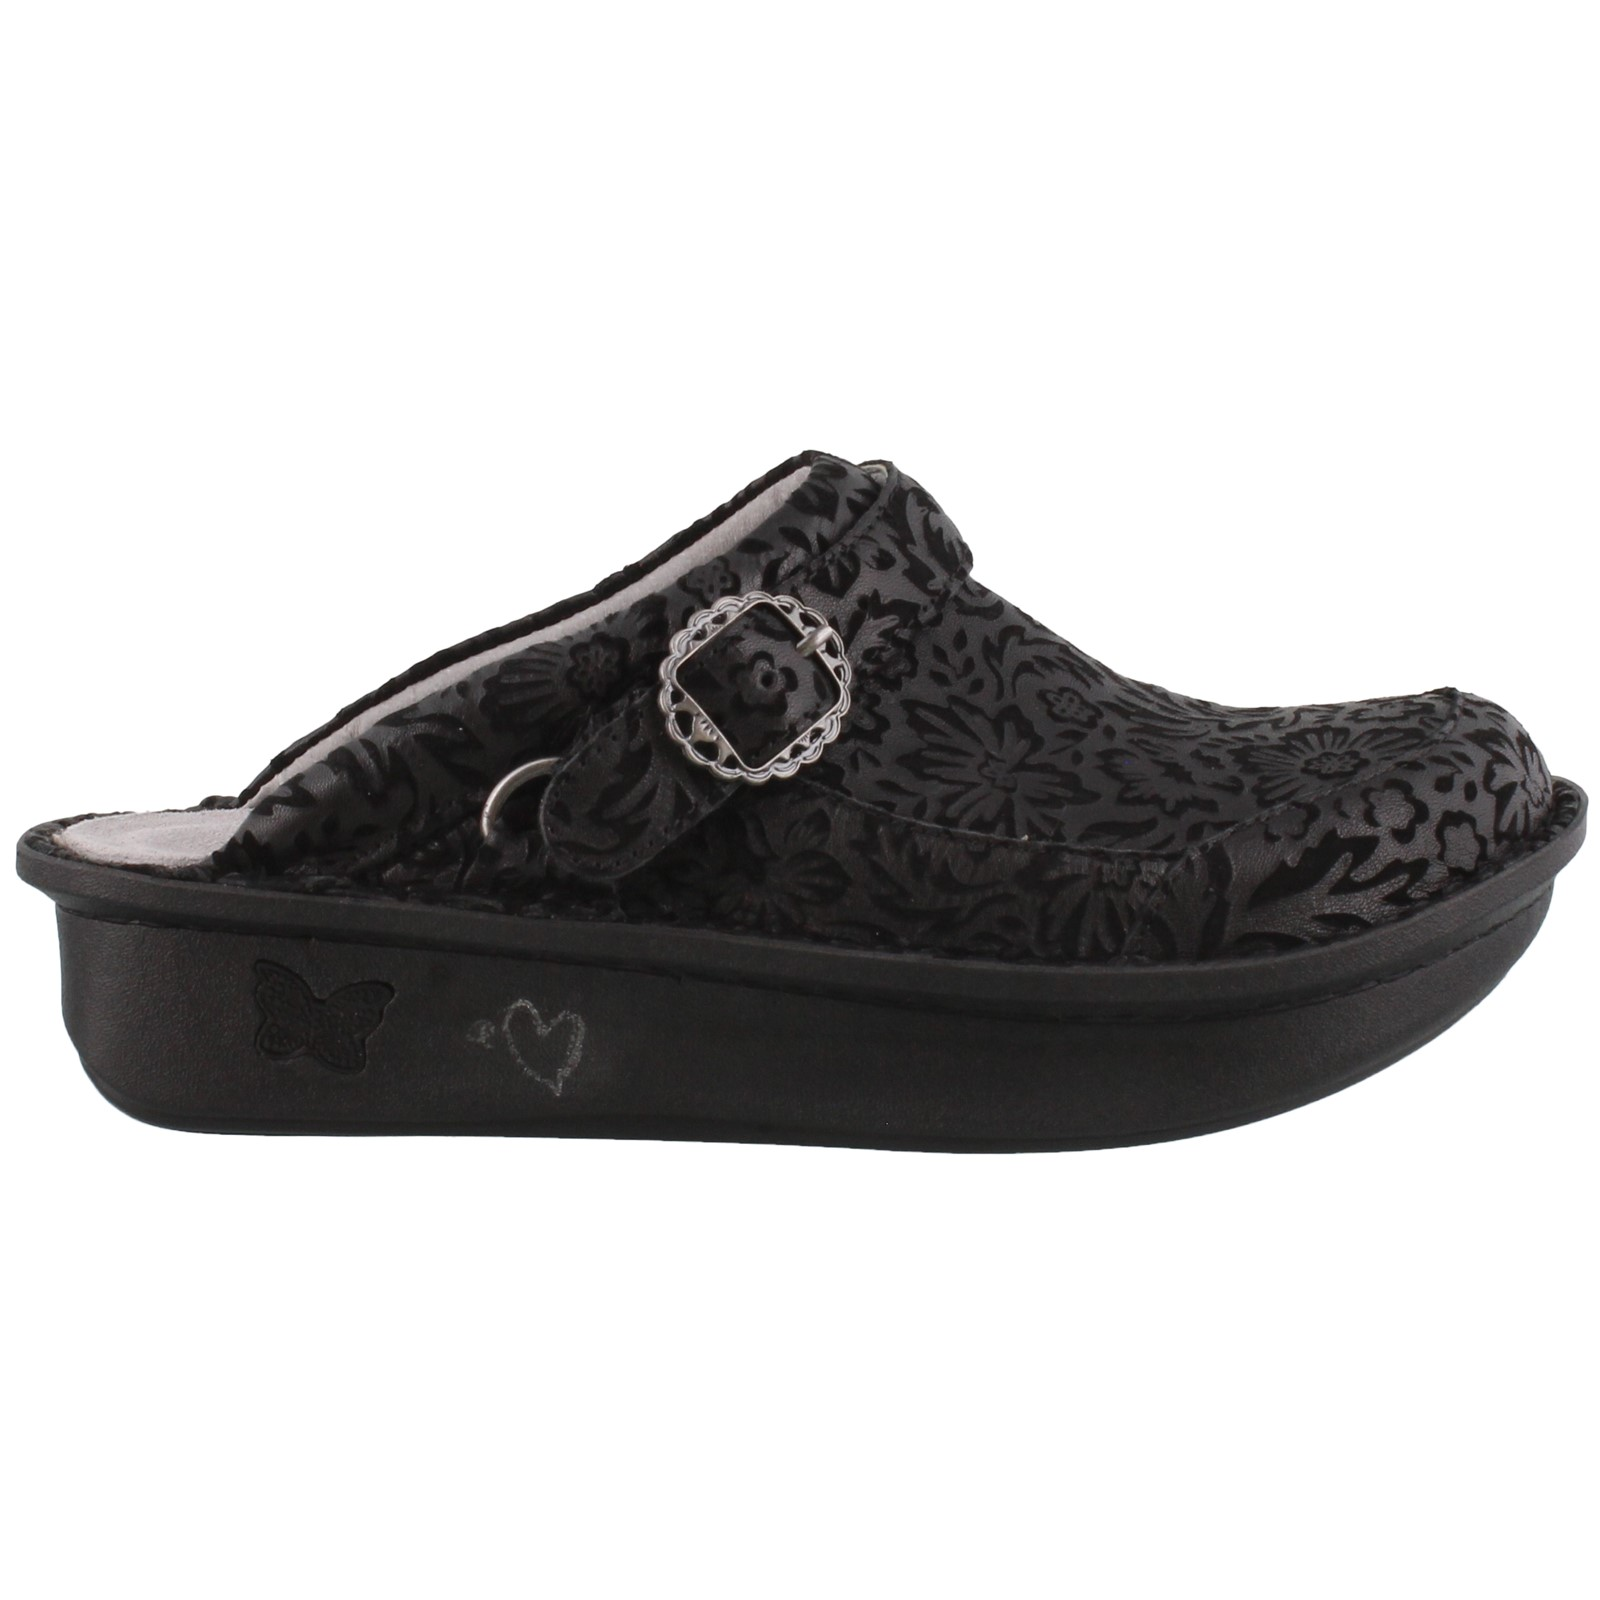 Women's Alegria, Seville Slip on Clogs